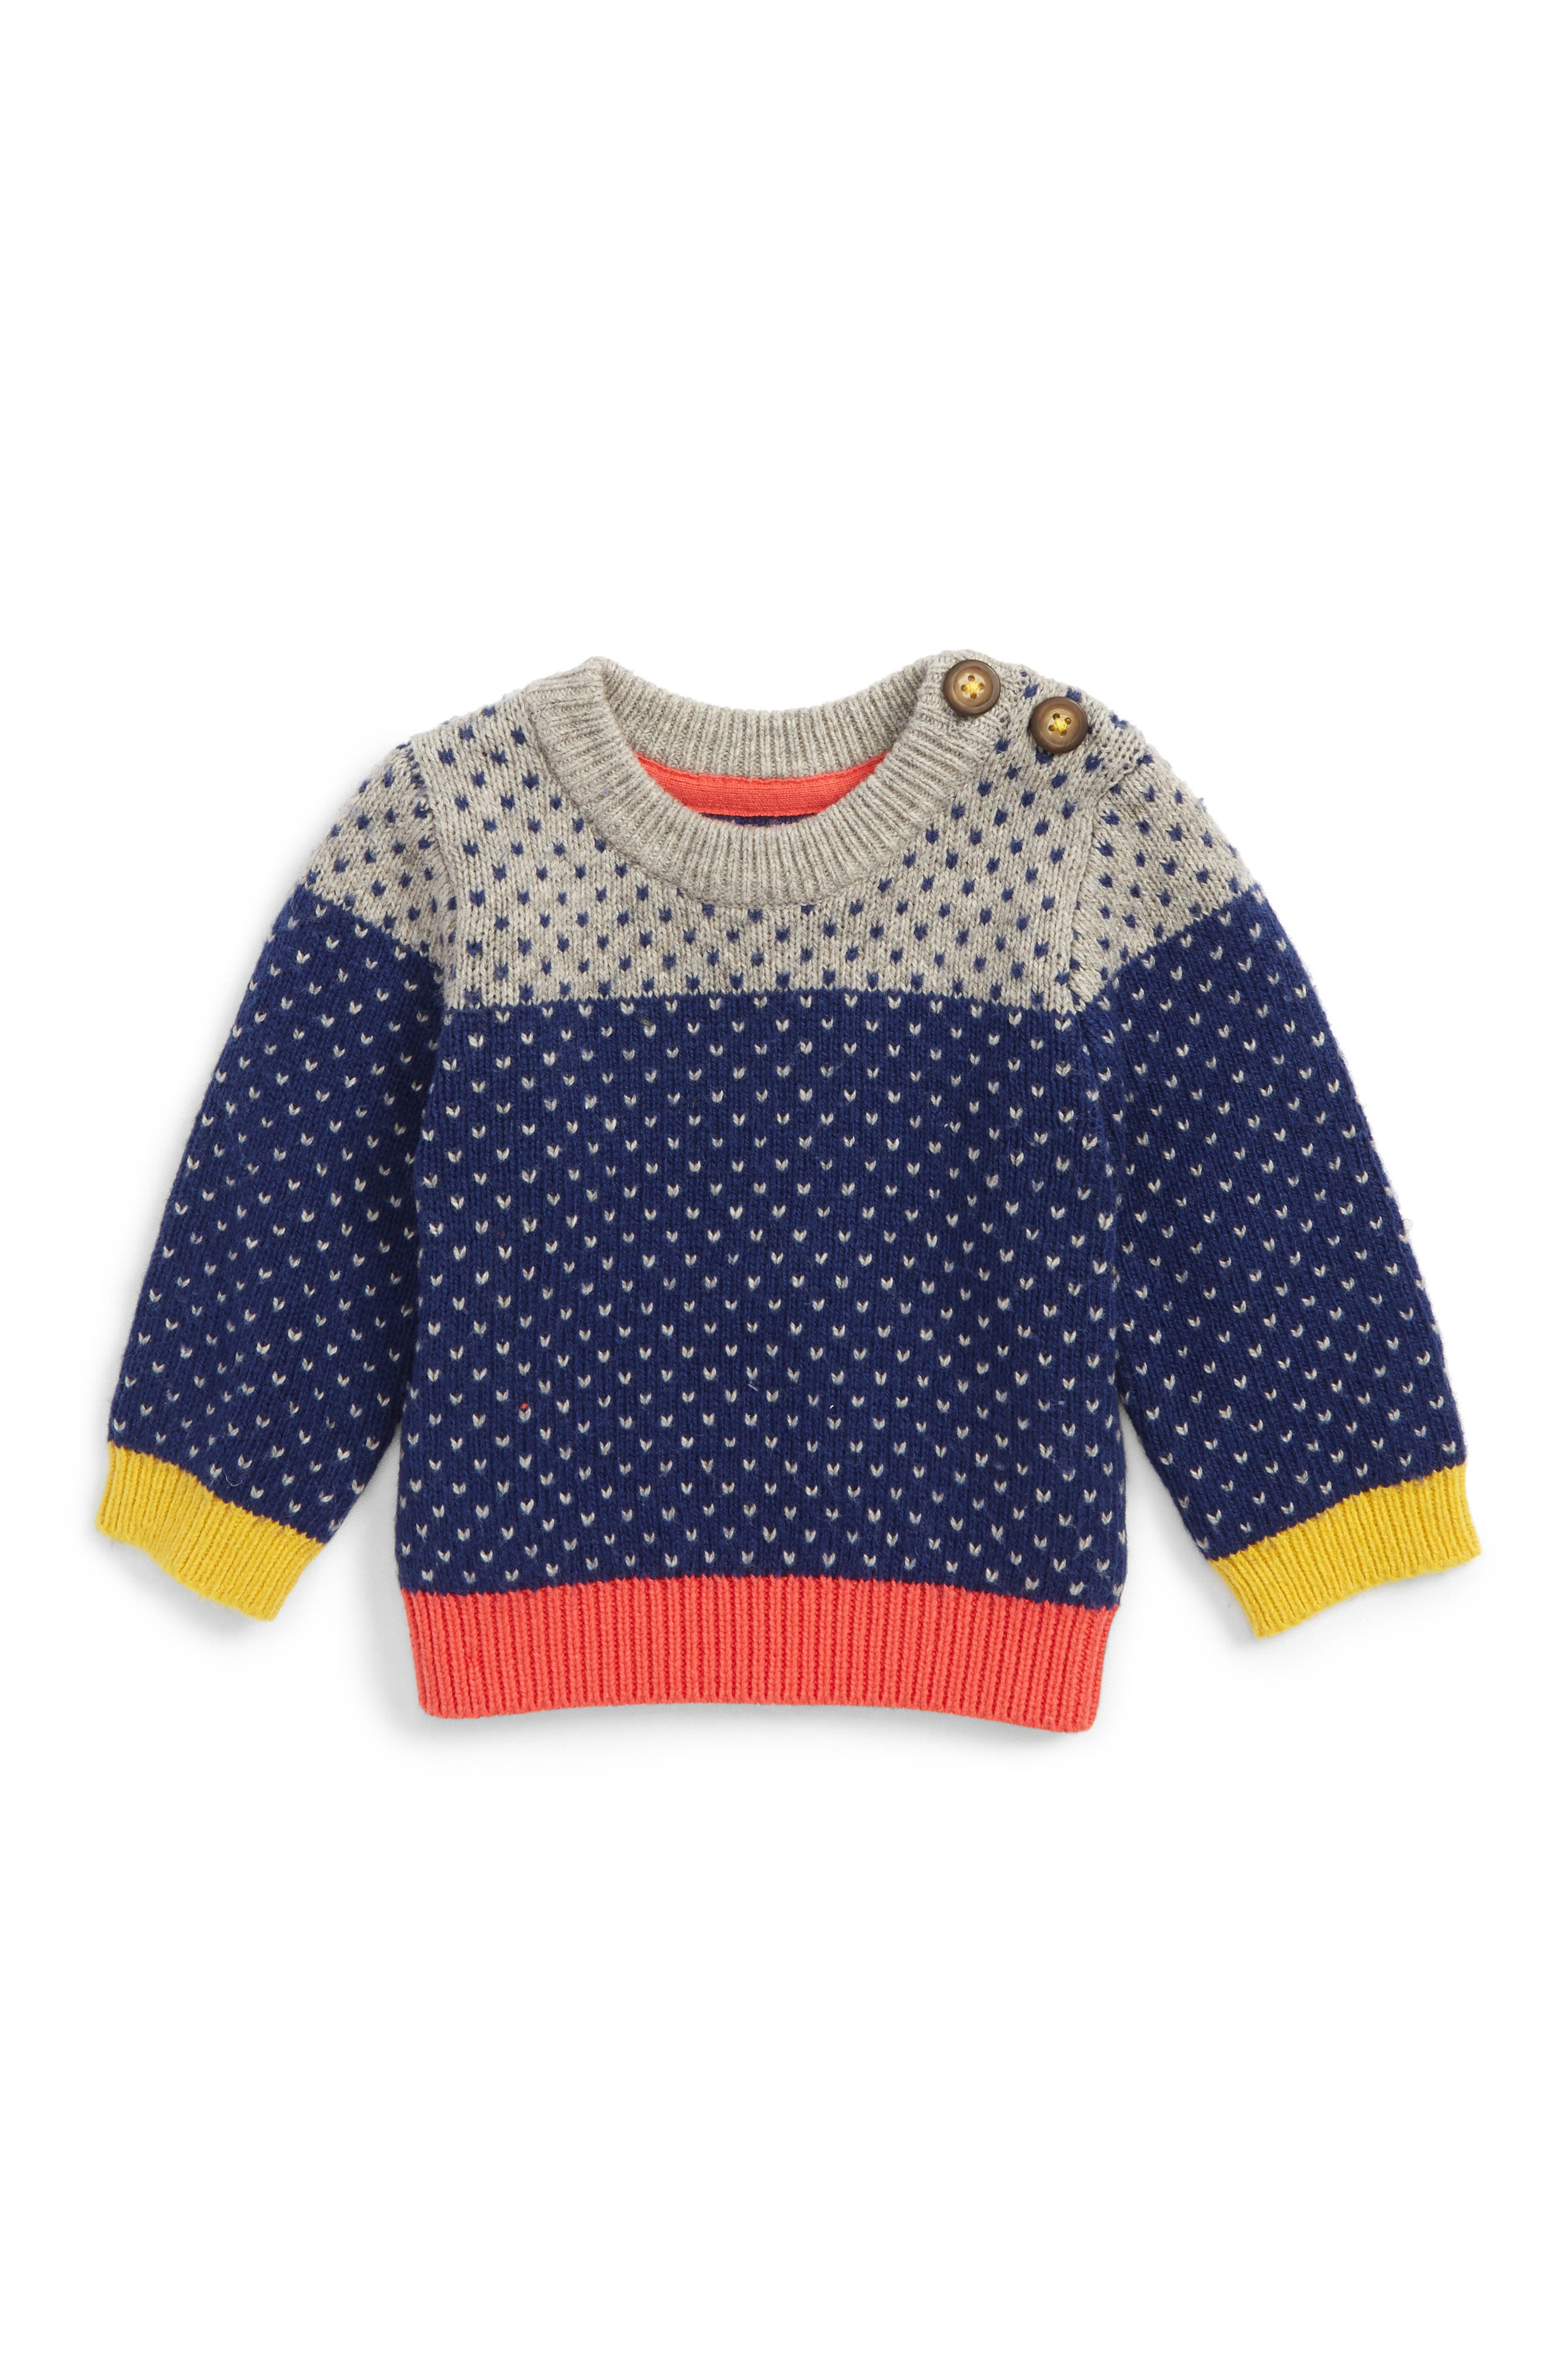 MINI BODEN Boden Colorblock Sweater